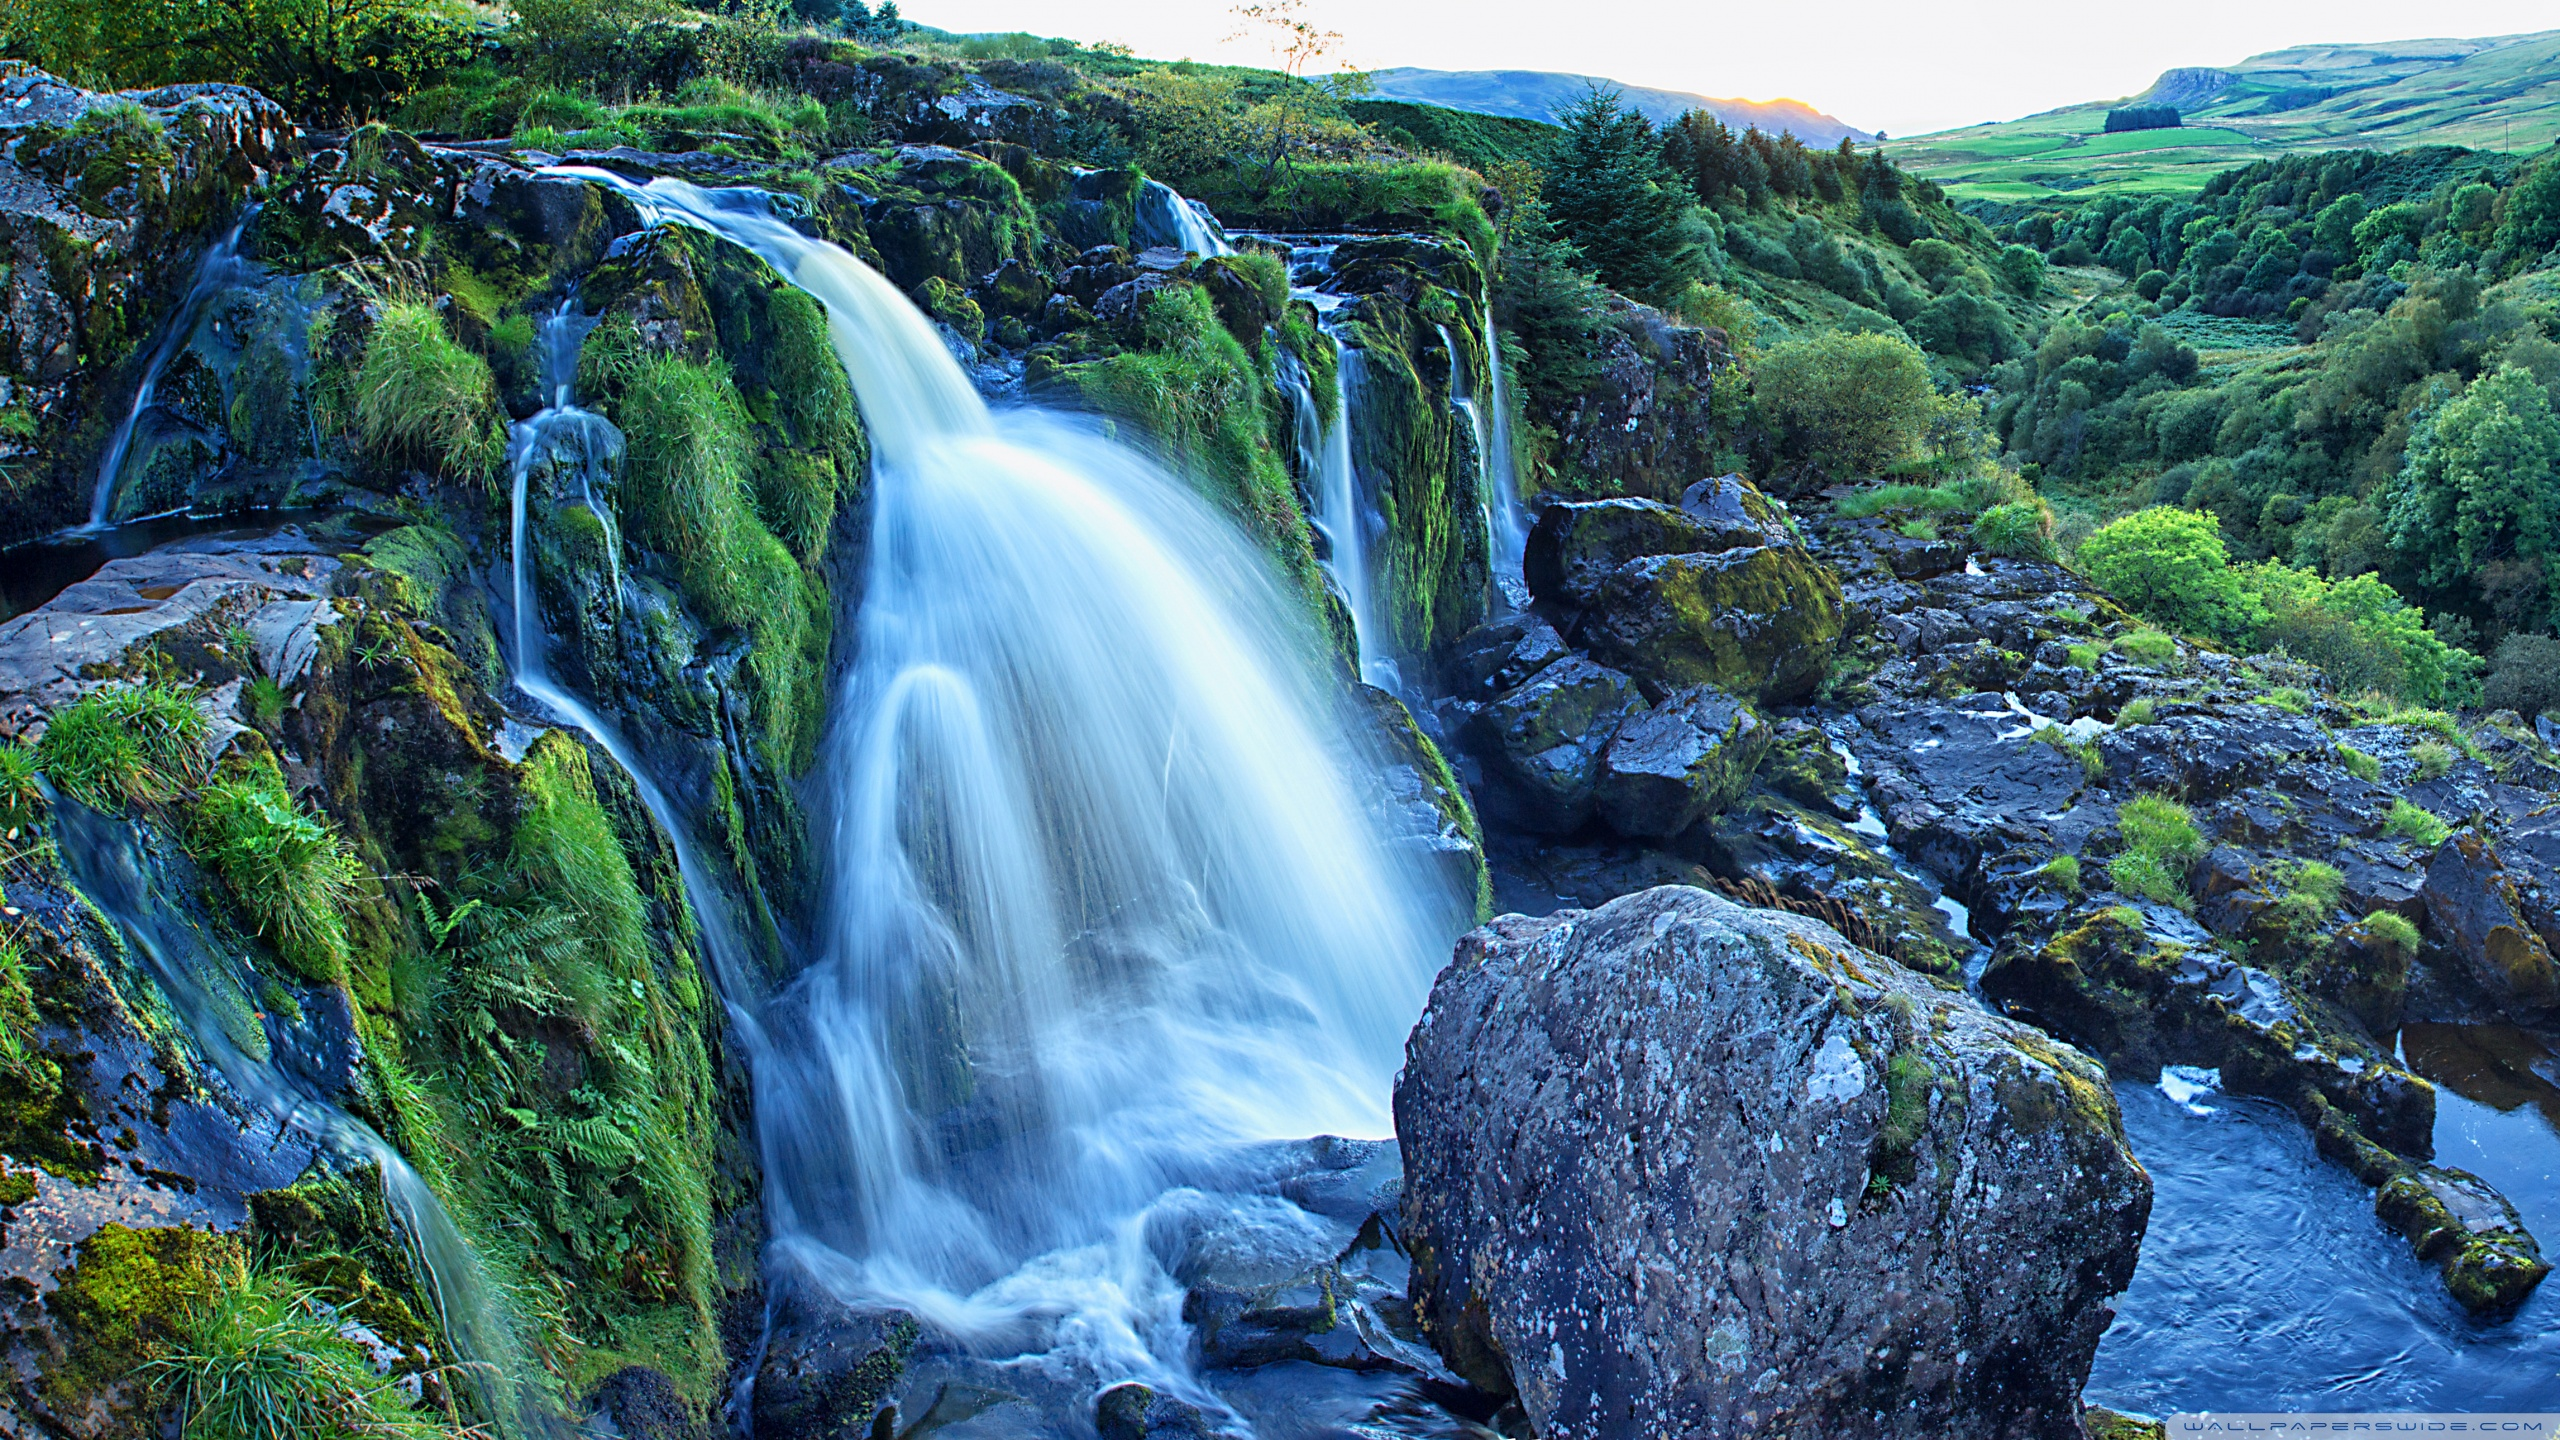 High Resolution Wallpaper   Loup Of Fintry Waterfall 2560x1440 px